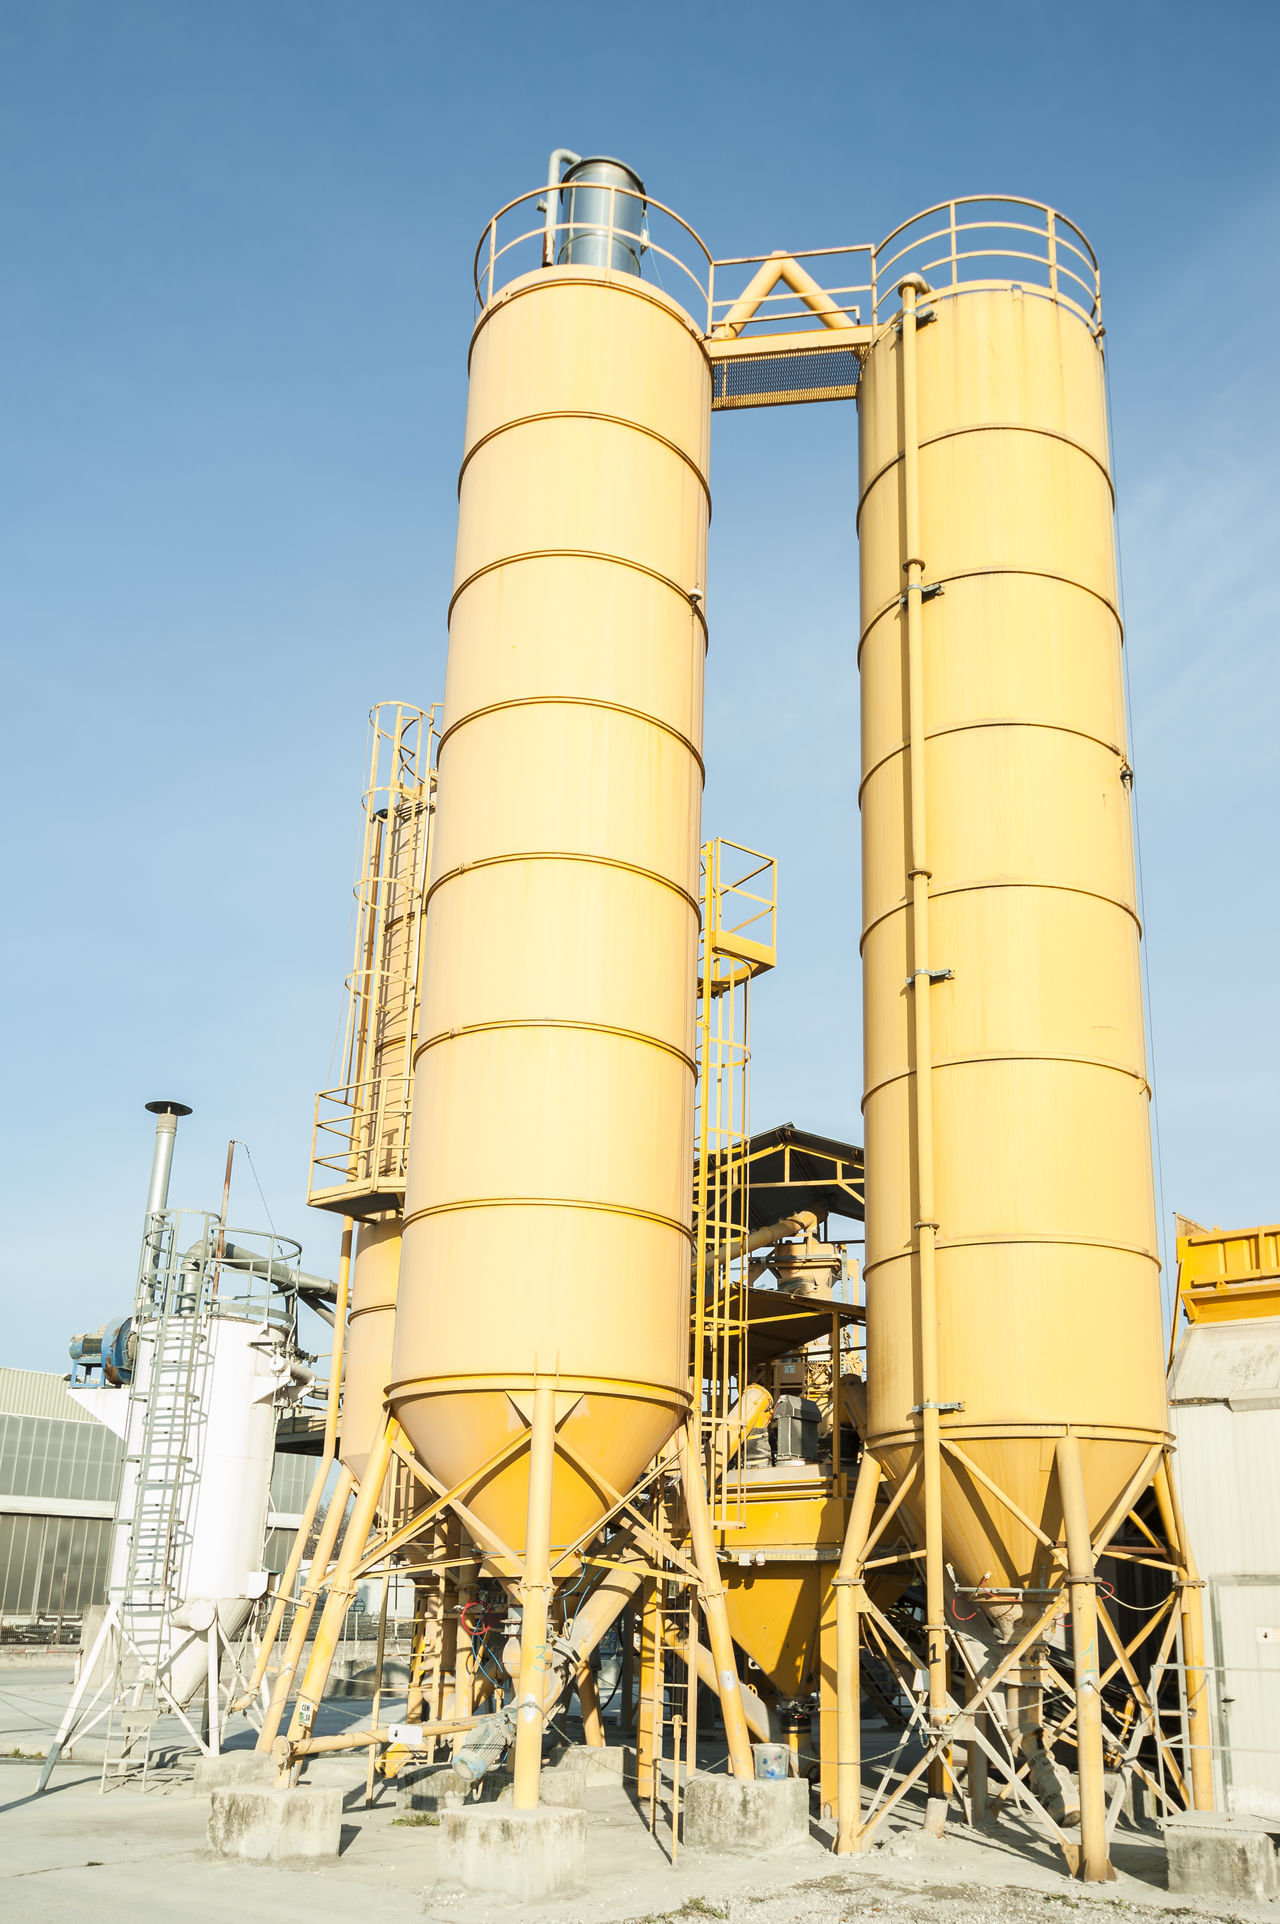 Industrial silos for the production of concrete Agriculture Built Structure Business Finance And Industry Construction Day Factory Industry Industry No People Outdoors Petrochemical Plant Silo Sky Storage Tank Warehouse